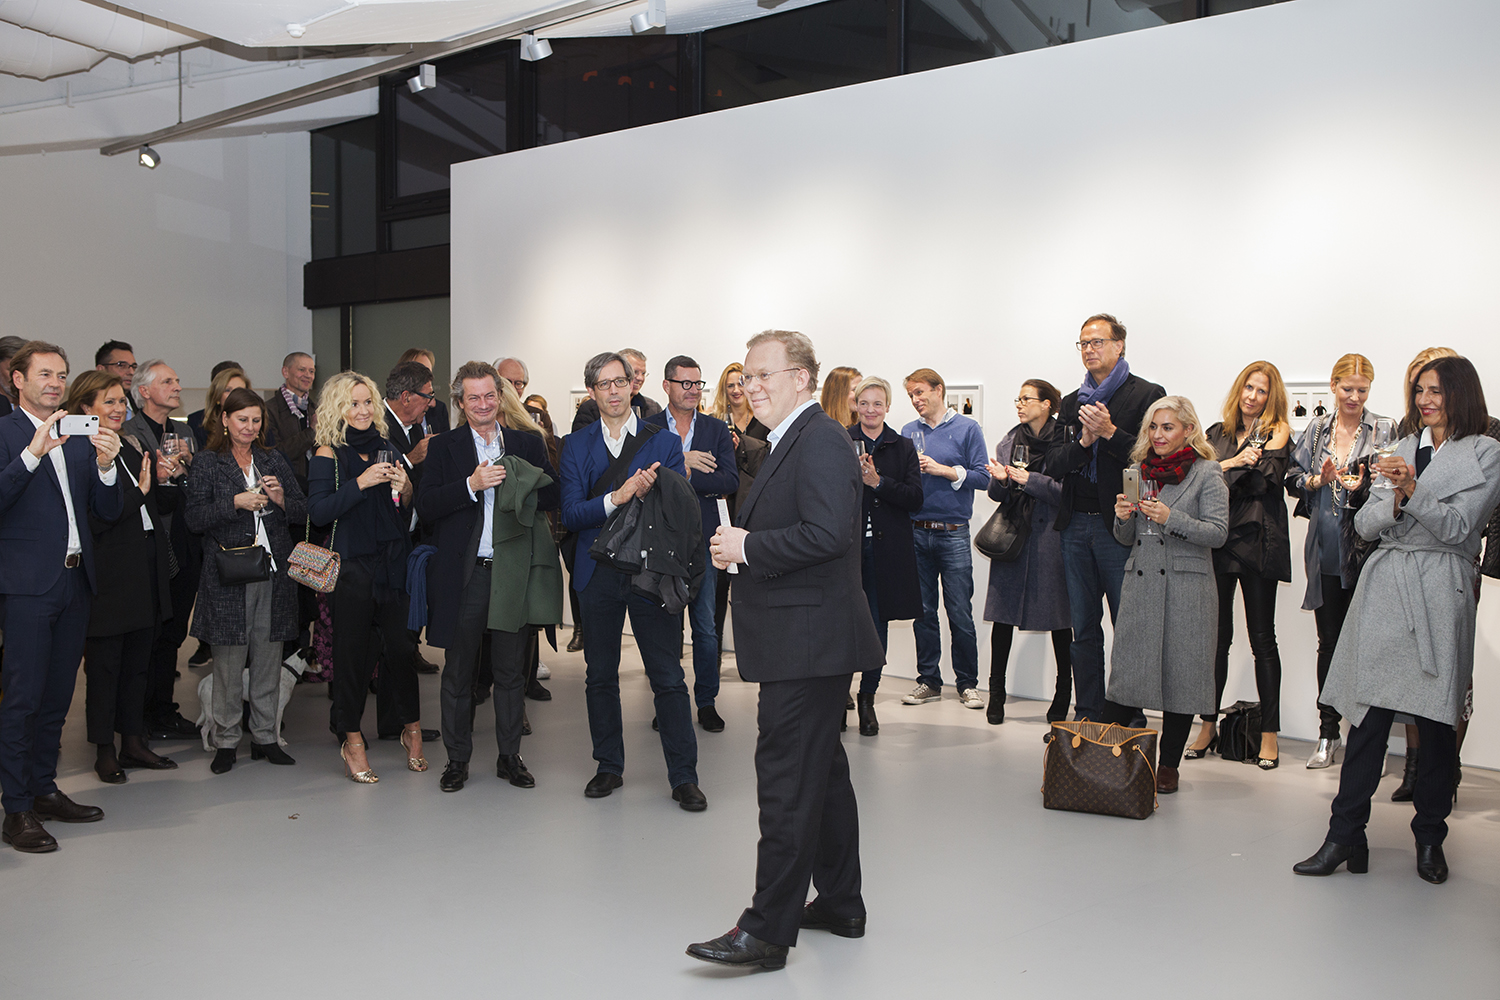 KikiKausch_Macht_ExhibitionOpening_2018_FT_208.JPG